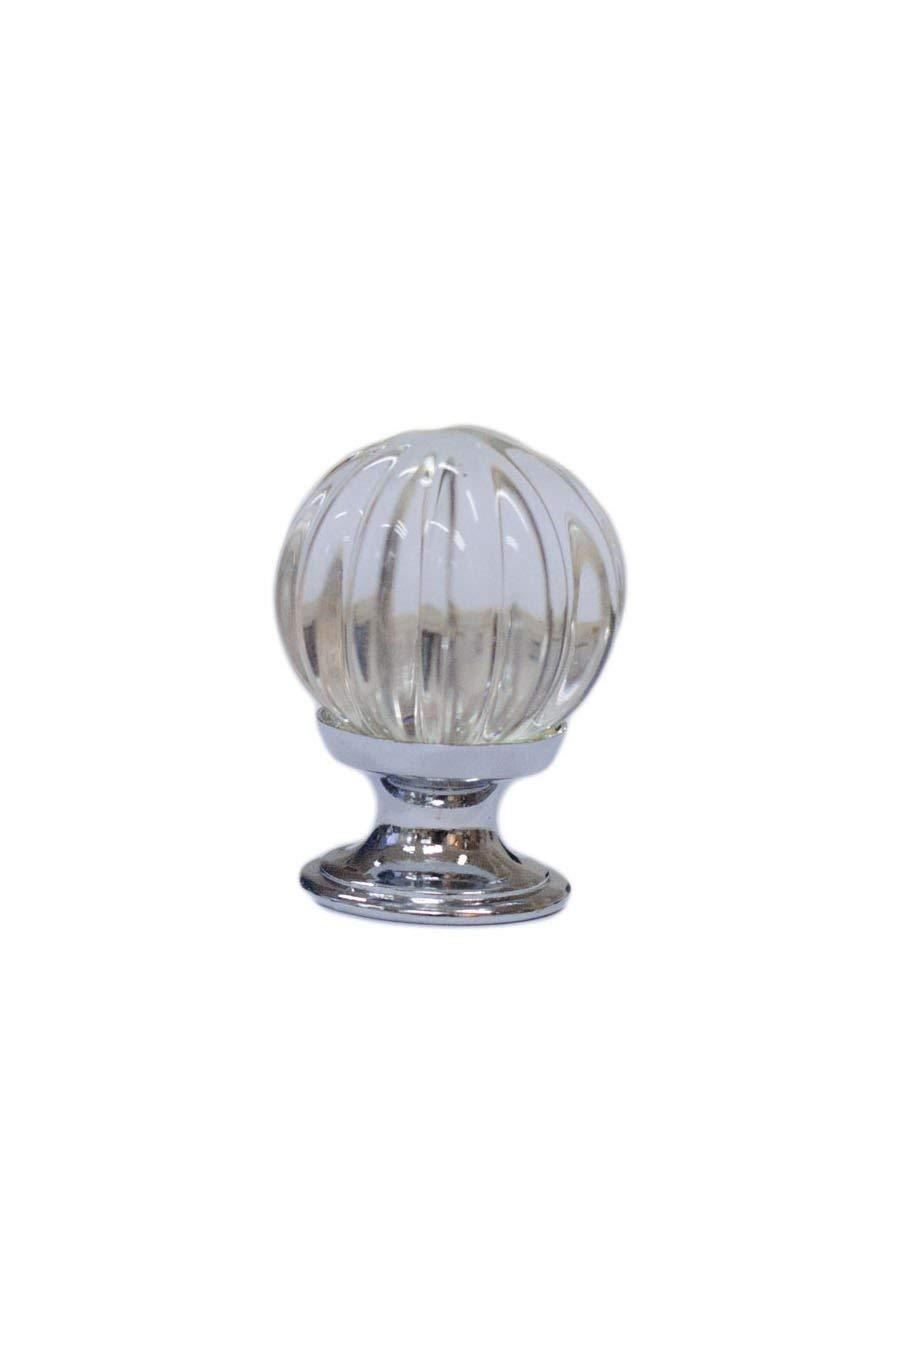 Urbanest Vintage Style Fluted Glass Cabinet Hardware Knob 1-3/16 Inch Diameter, Zinc Alloy Base, 10 Pack